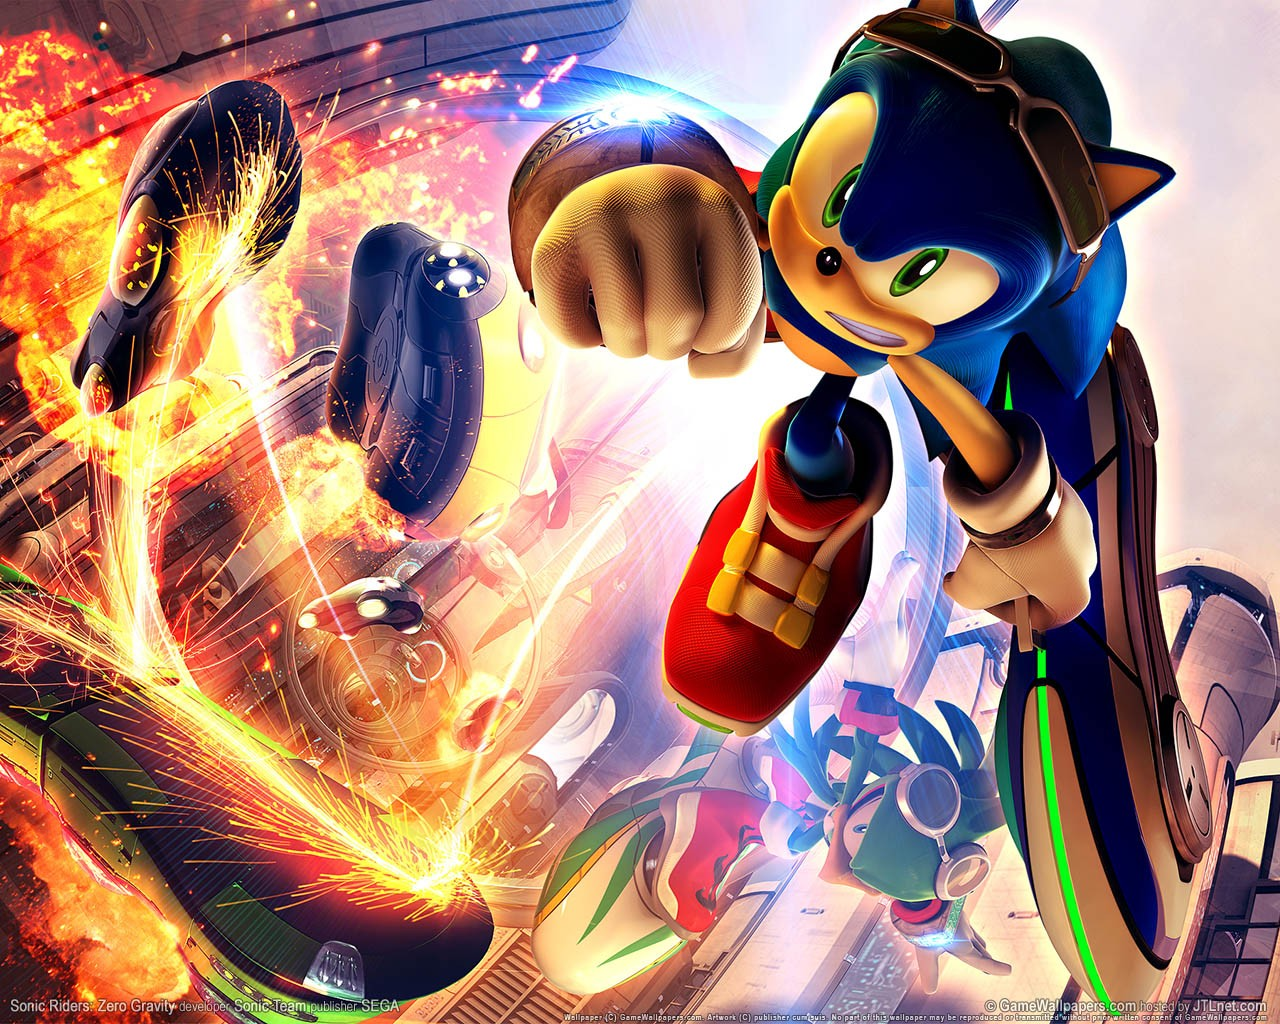 جديد تحميل حصرياً Sonic 2013 attachment.php?attachmentid=1006276&stc=1&d=1258932599